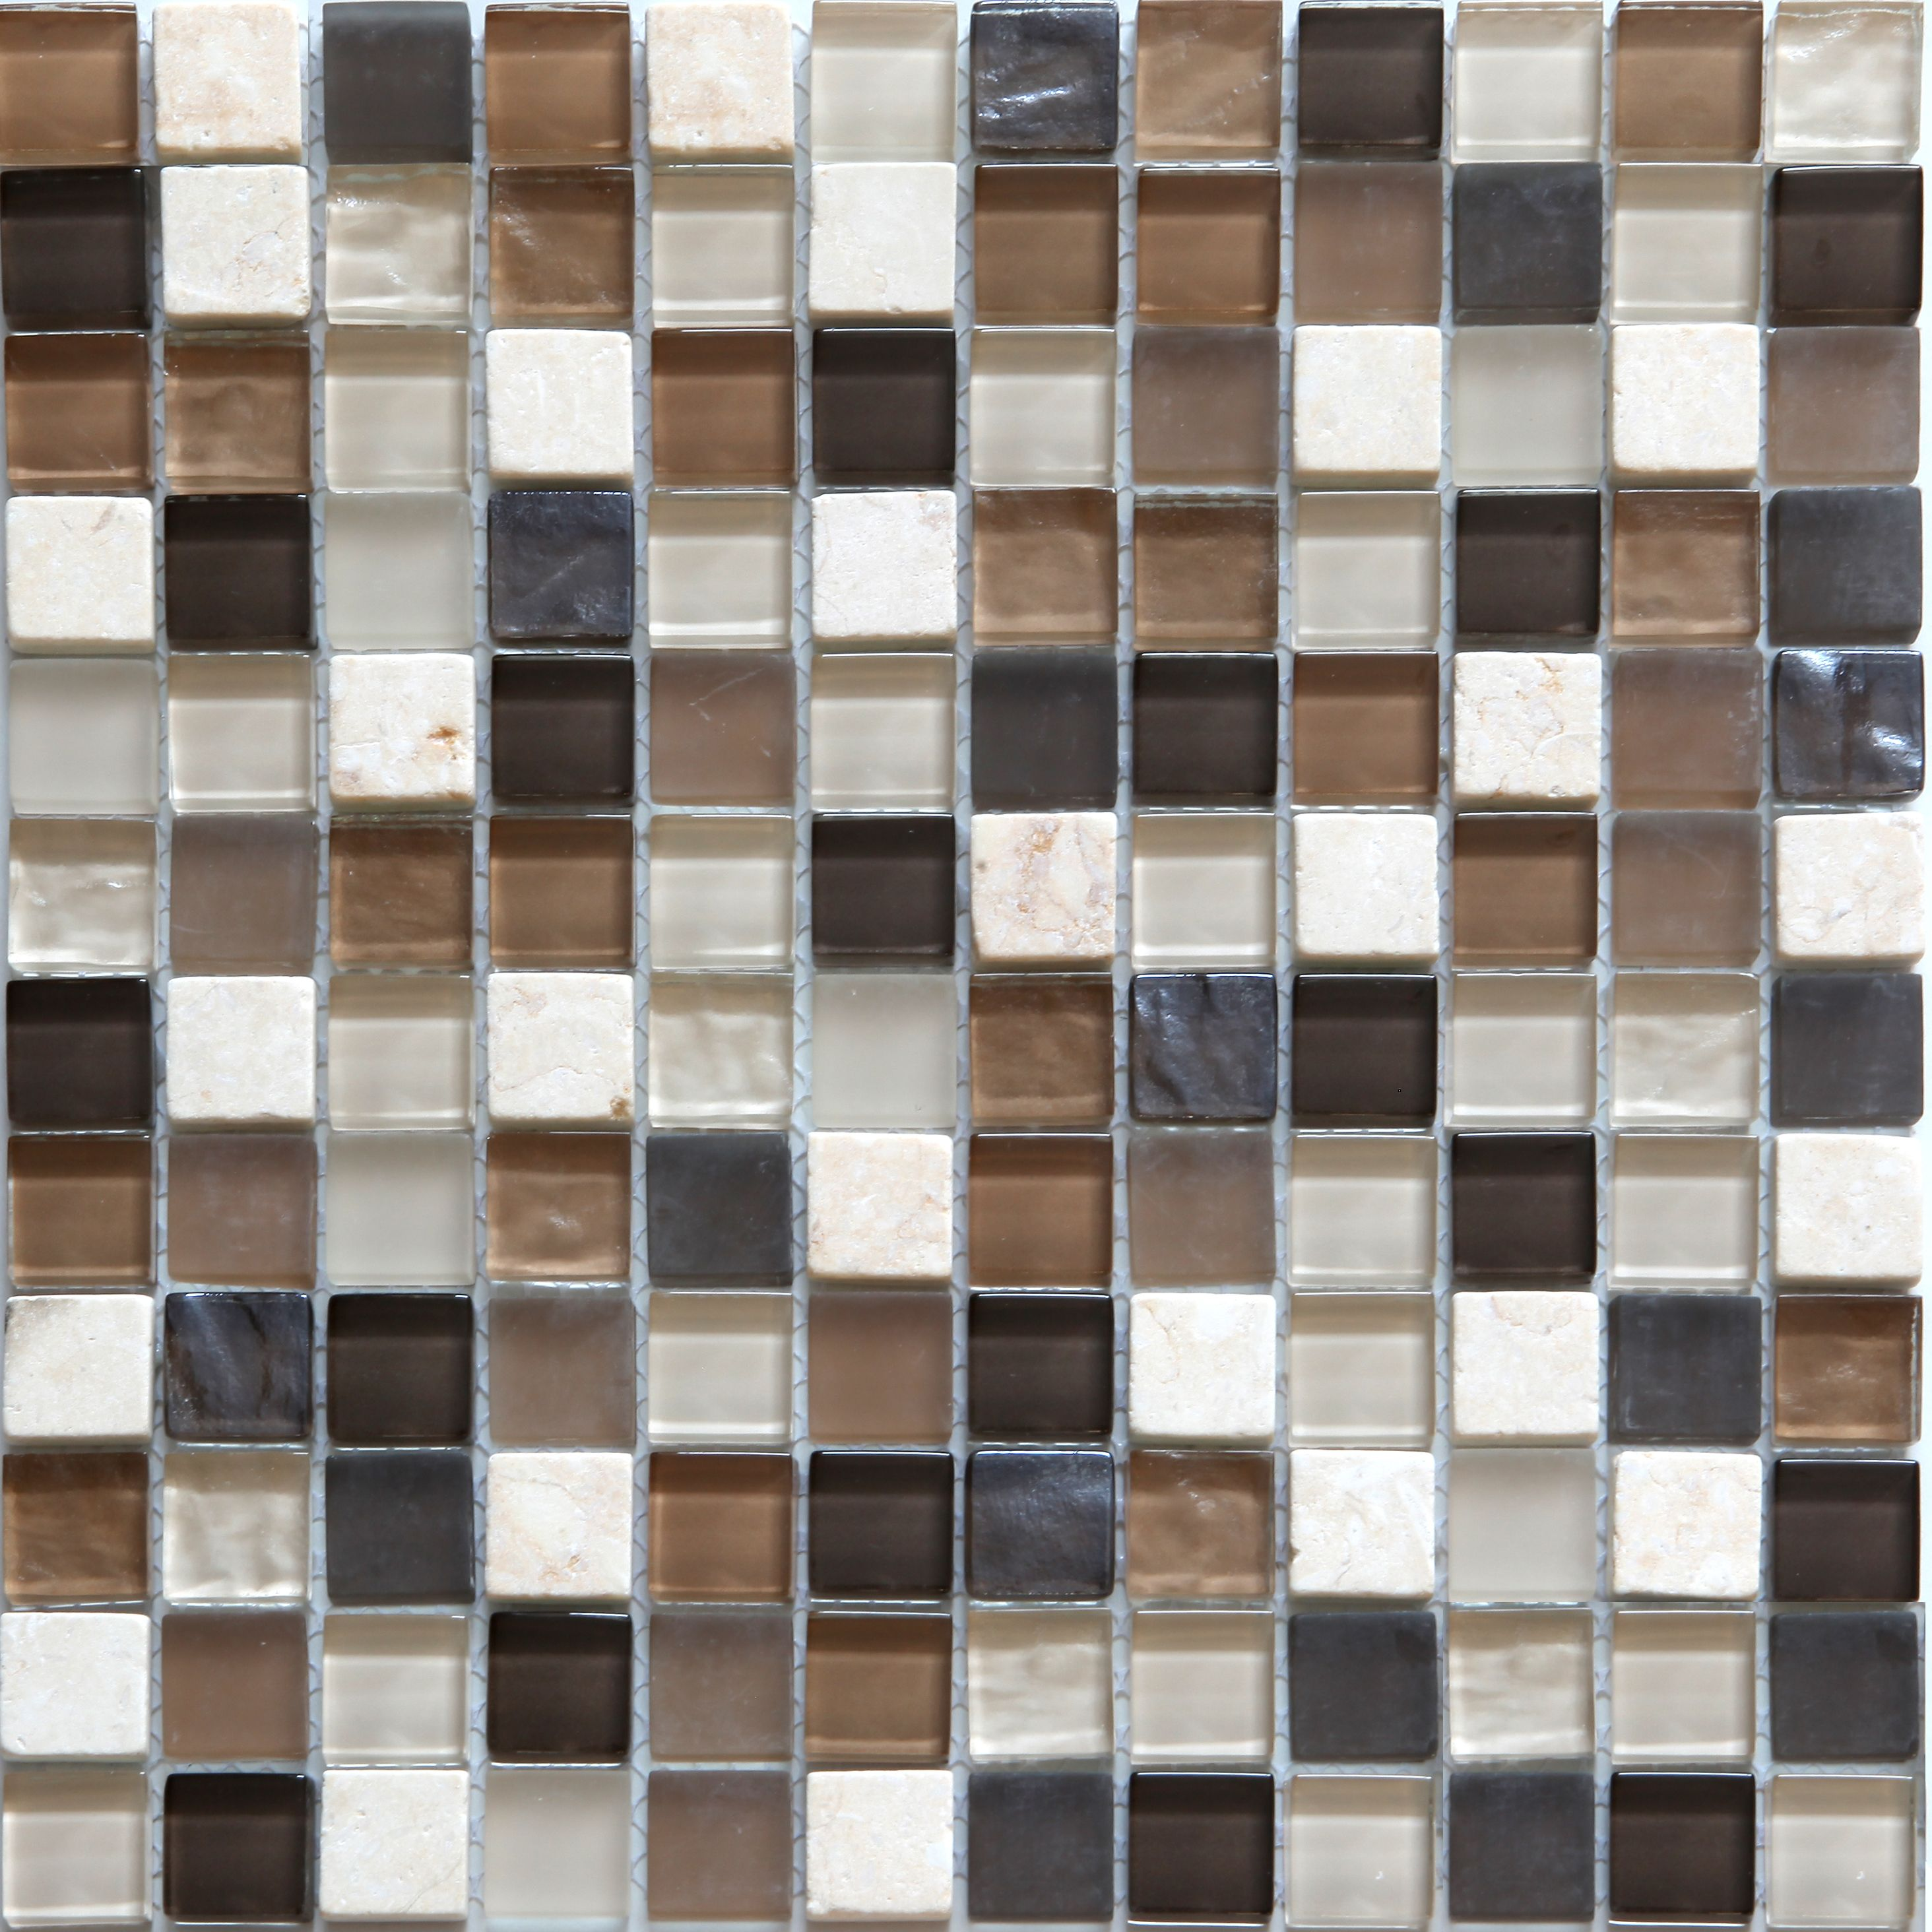 Brown Mosaic Glass Stone Wall Tile L 300mm W 308mm: Triesto Beige & Brown Glass & Marble Mosaic Tile, (L)300mm